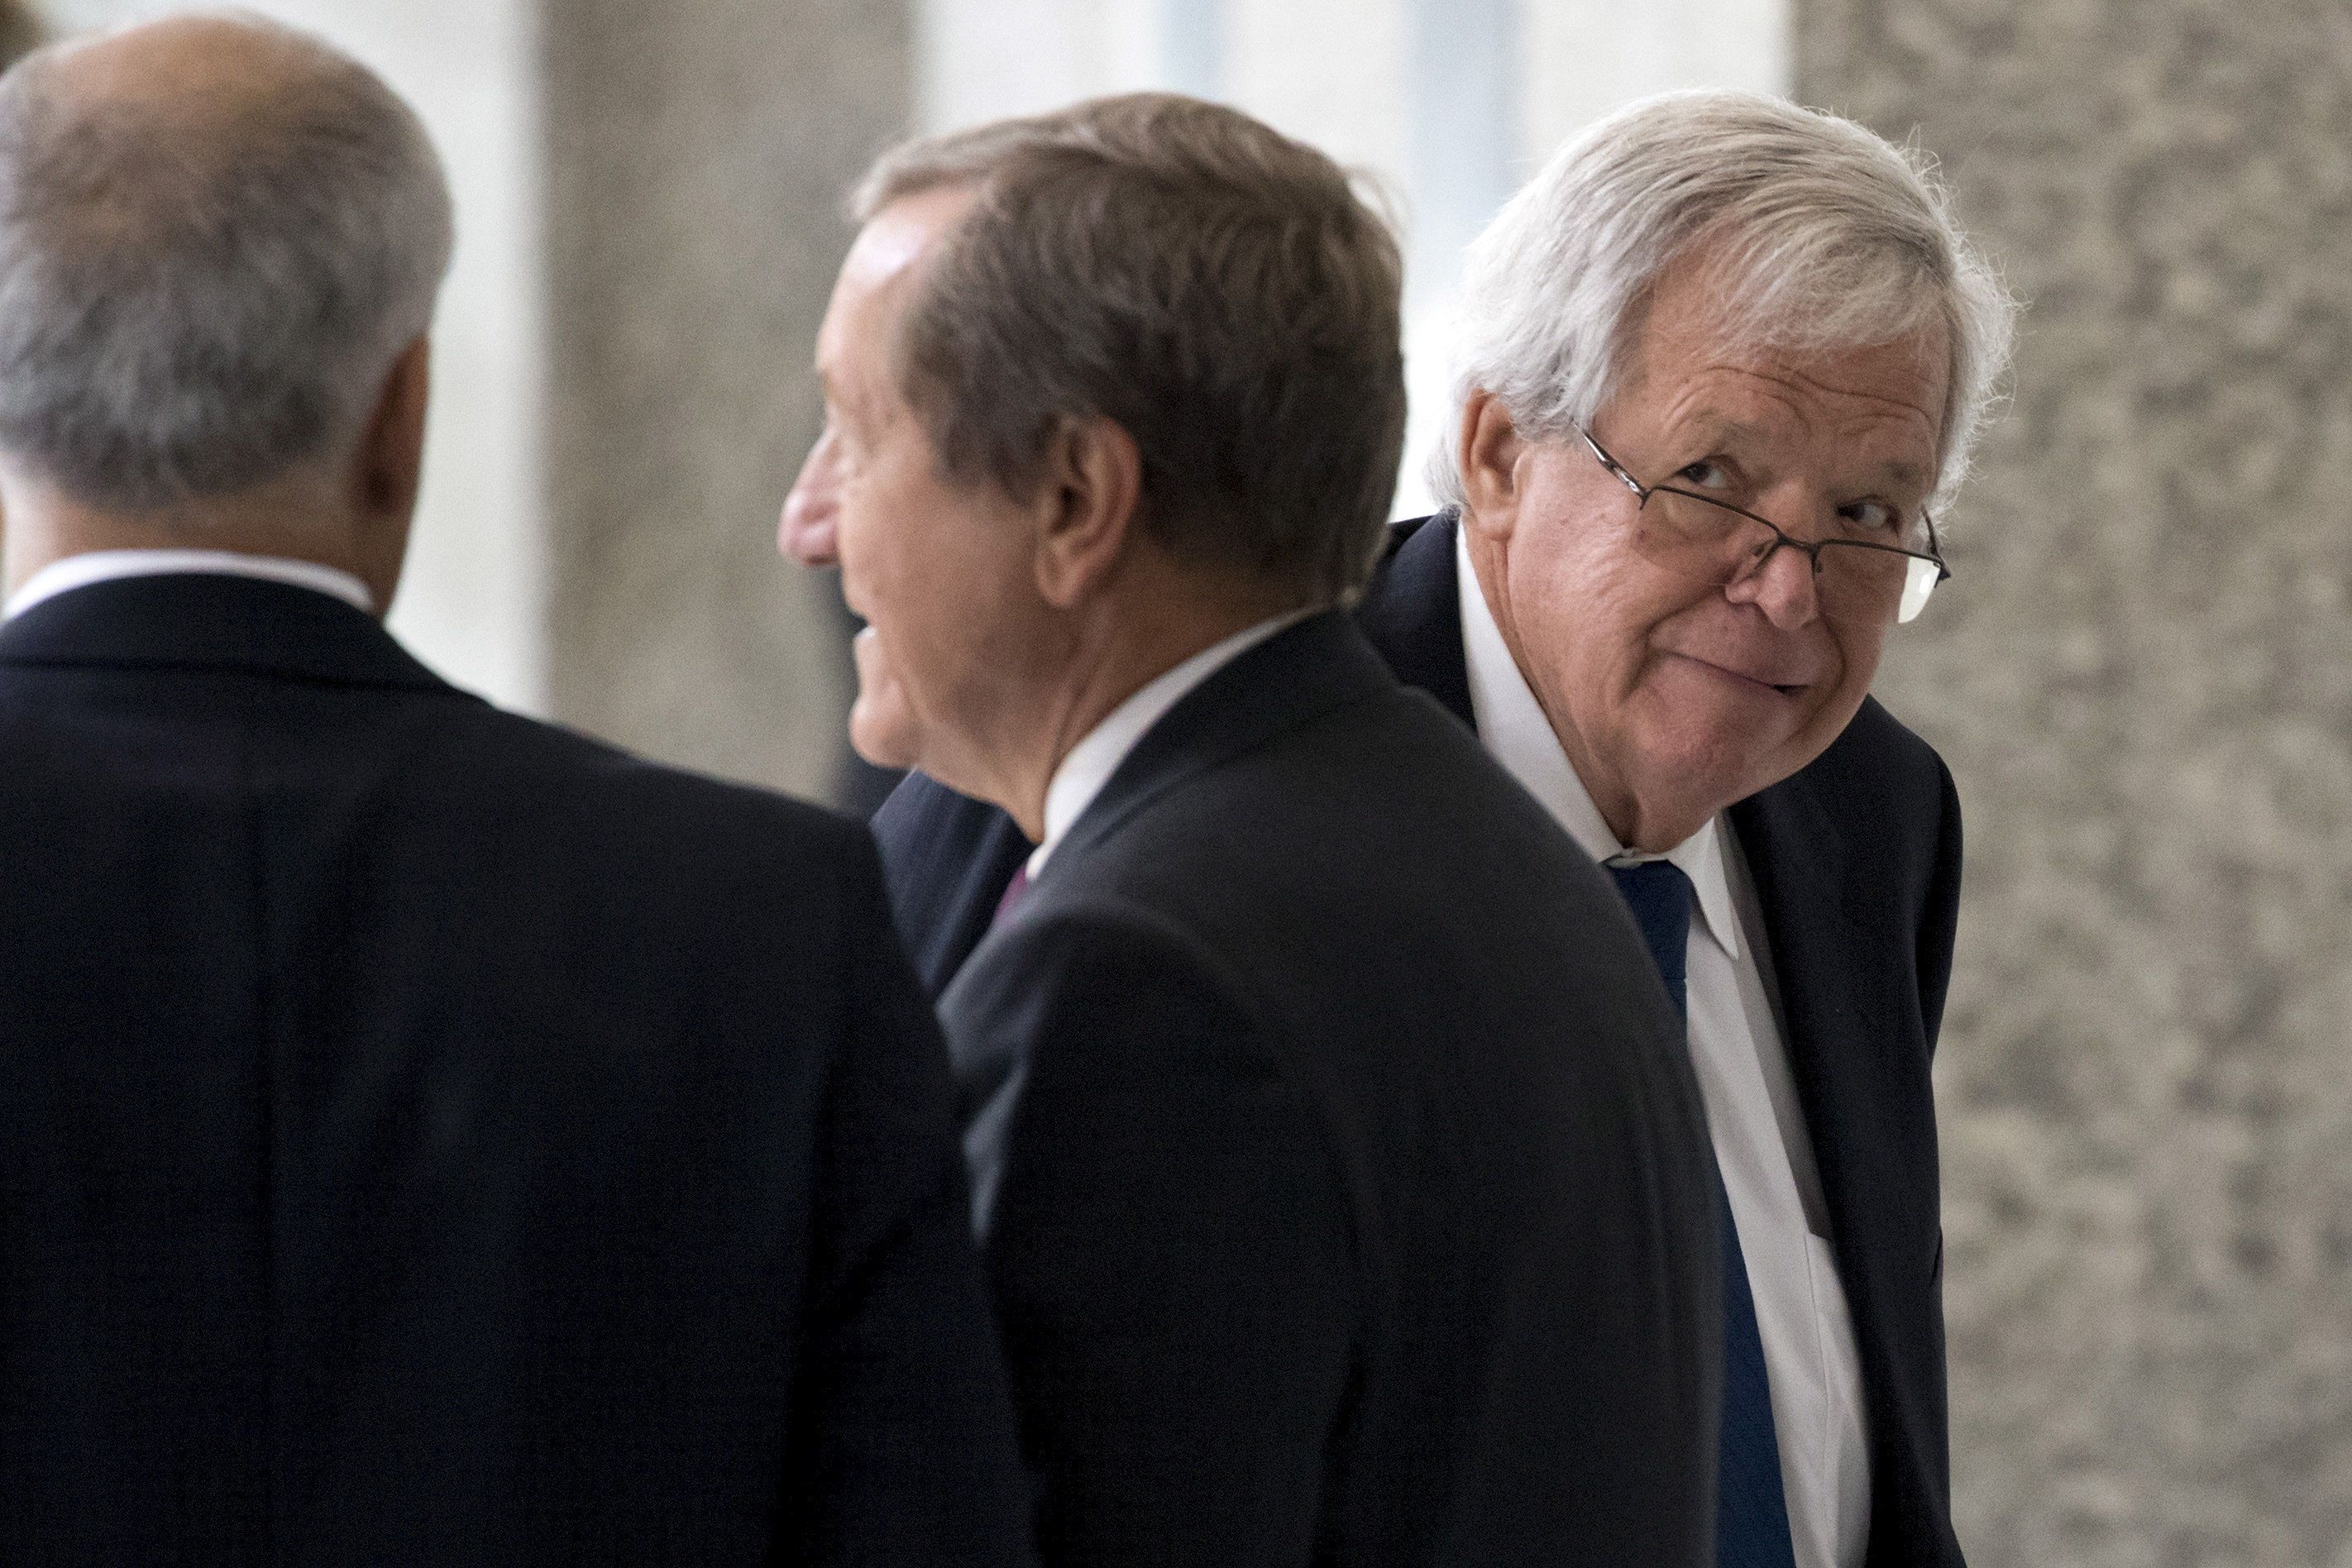 Former U.S. House of Representatives Speaker Dennis Hastert arrives for an appearance in federal court in Chicago June 9, 2015. Hastert is due to be arraigned in federal court in Chicago on Tuesday on charges of trying to hide large cash transactions and lying to the FBI about it. According to an indictment, Hastert, 73, was trying to evade detection of $3.5 million in payments he had promised to make to someone from his hometown of Yorkville, Illinois, to conceal past misconduct against the person. REUTERS/Andrew Nelles      TPX IMAGES OF THE DAY